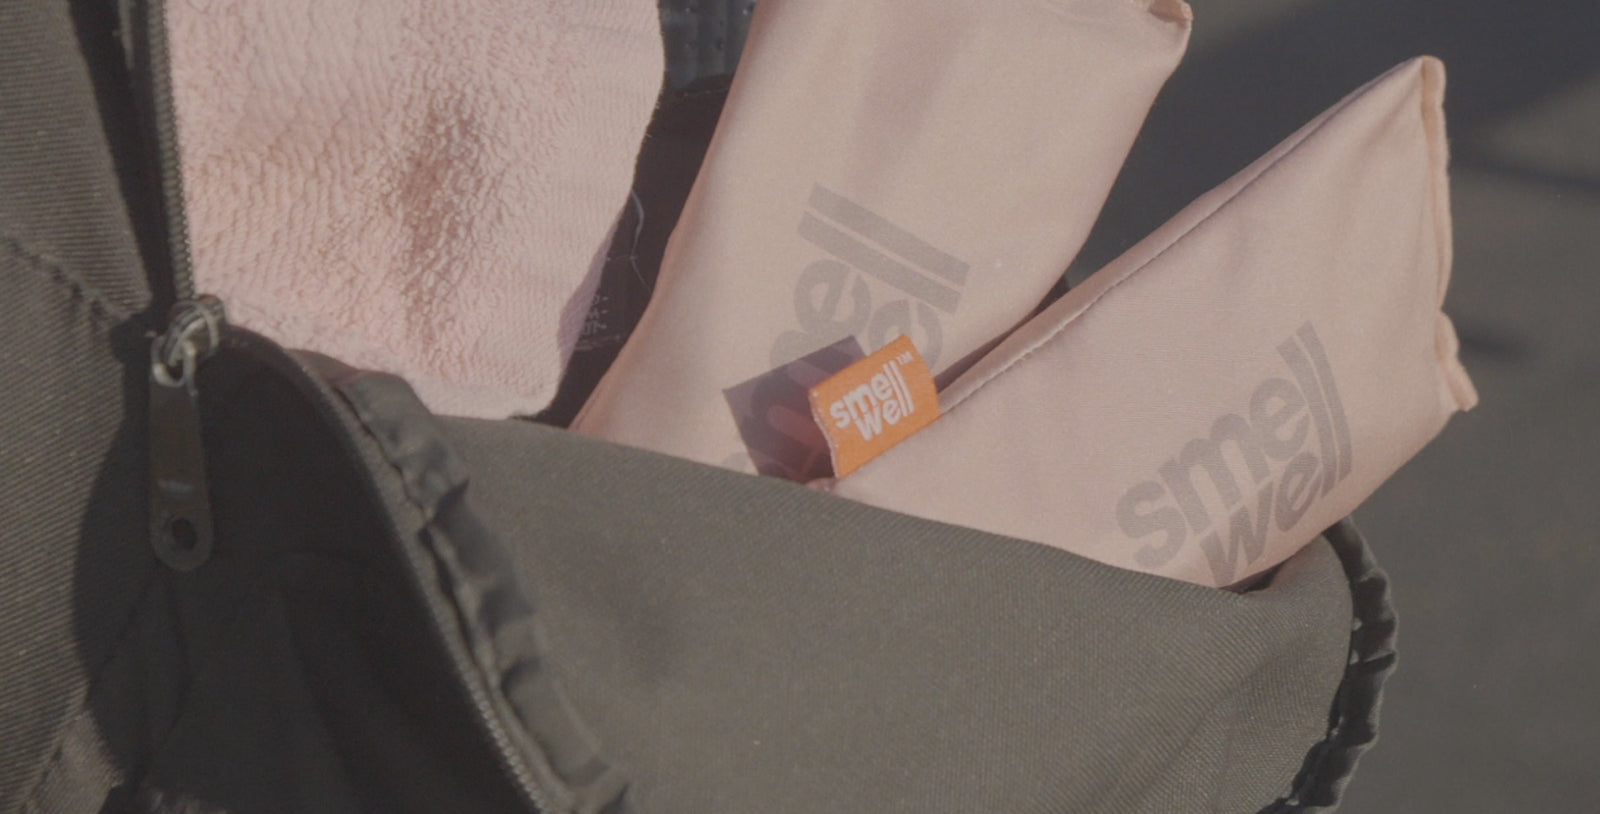 A pair of SmellWell Freshener Inserts sticking out of a bag of training clothes.